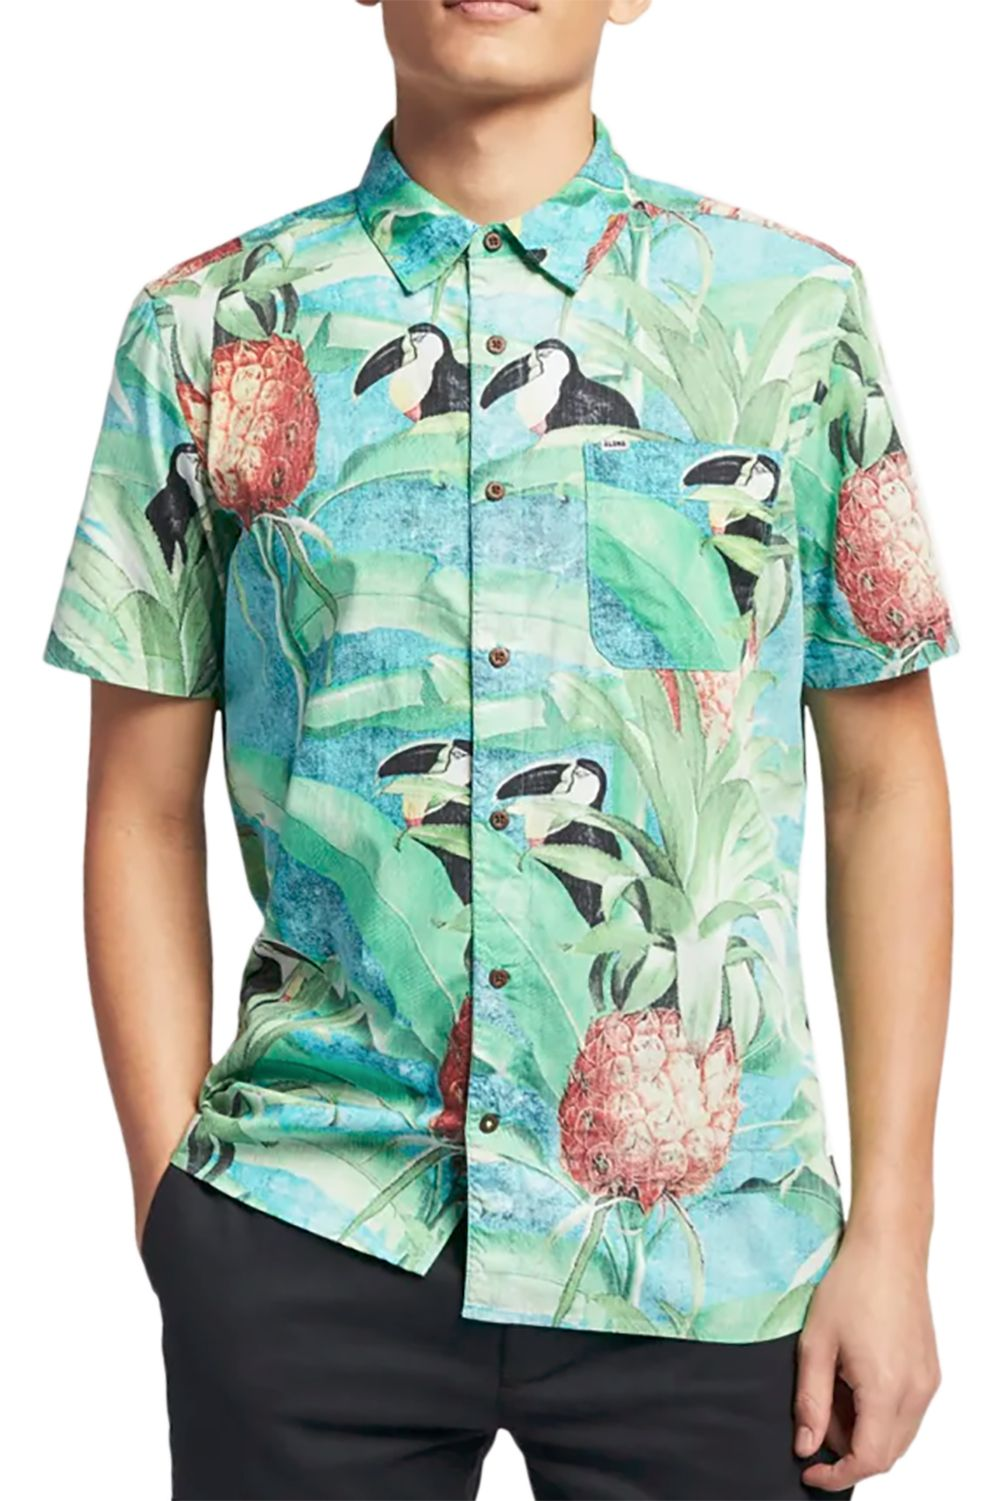 c34220c2ab168 Camisa Hurley COSTA RICA WOVEN S S Tropical Twist